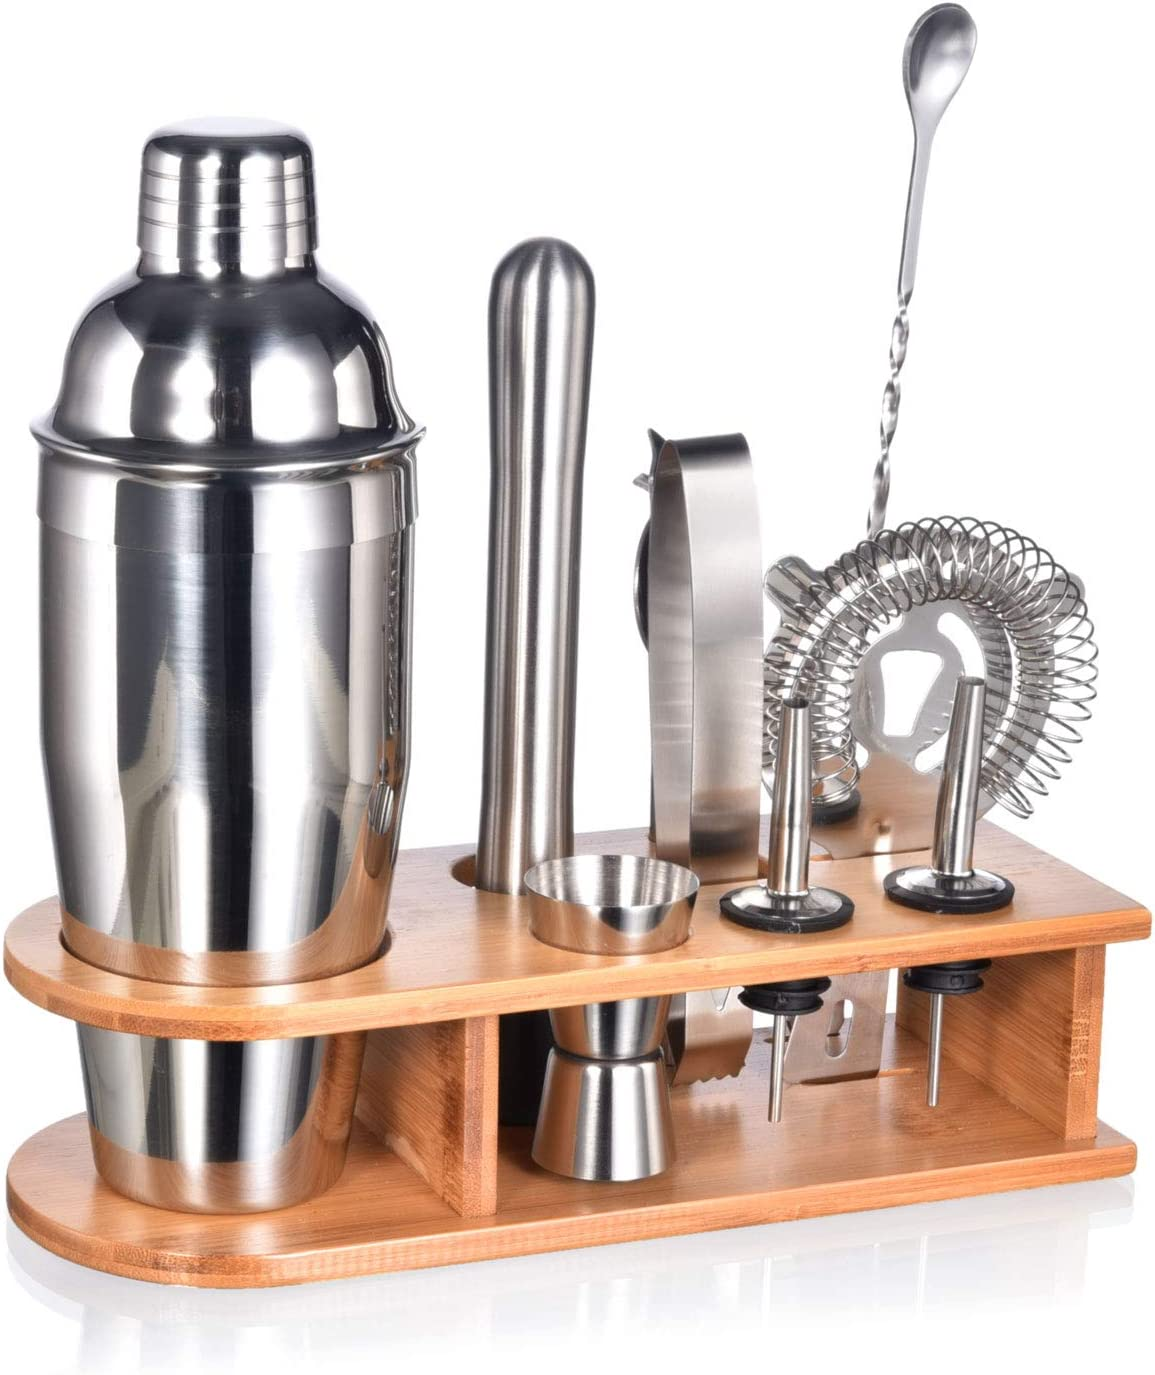 Essential Bar Accessories and Bonus E-Book for Bartending Enthusiasts Premium Bartender Kit Engraved Recipes Bamboo Organizer Stand The Perfect Gift by Jake /& Jill 12 Piece Cocktail Shaker Set